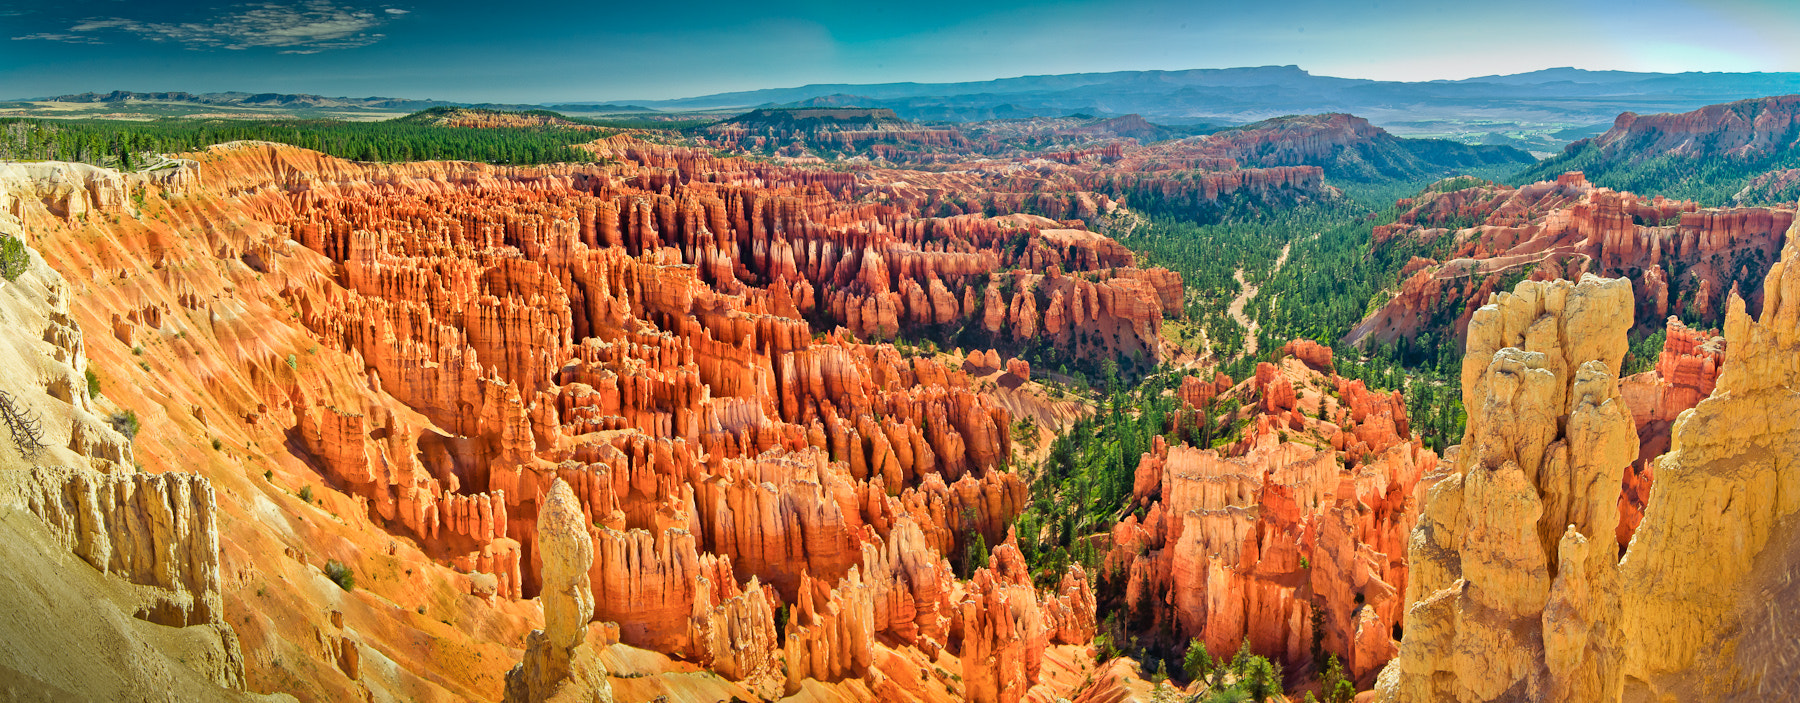 Photograph Sandstone Cathedral by John Iarussi on 500px